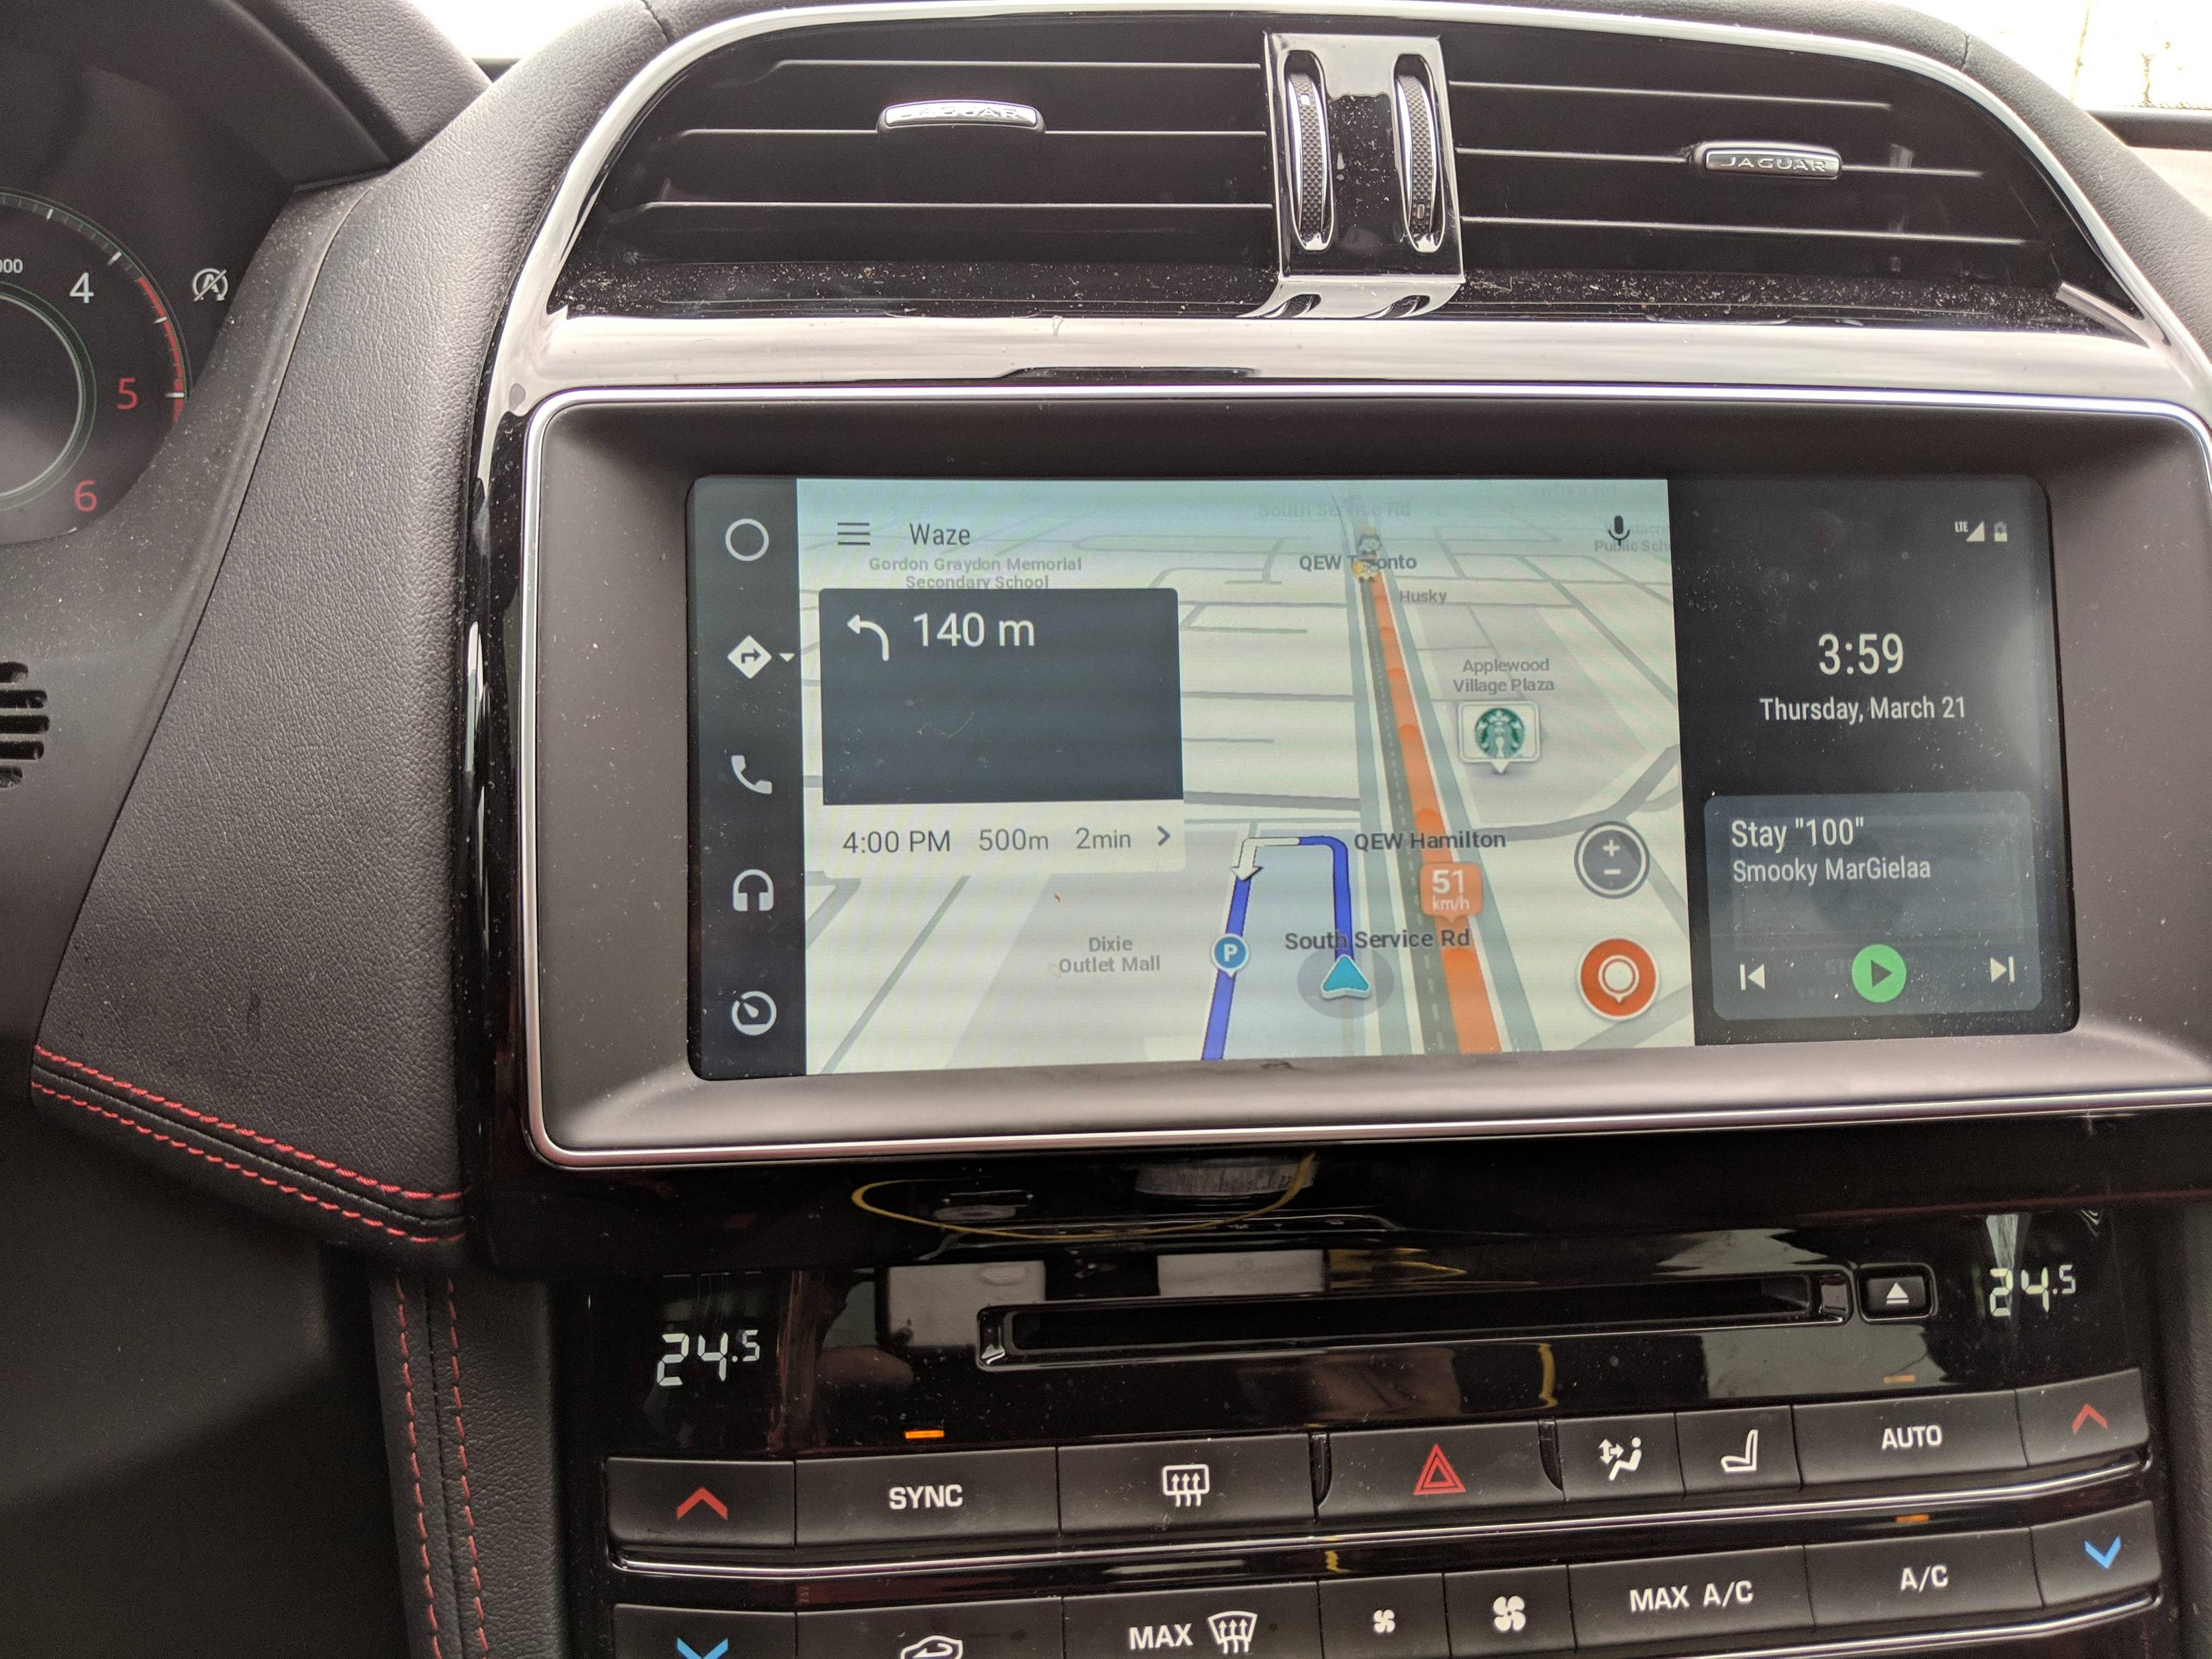 Android Auto update delivers widescreen support - 9to5Google